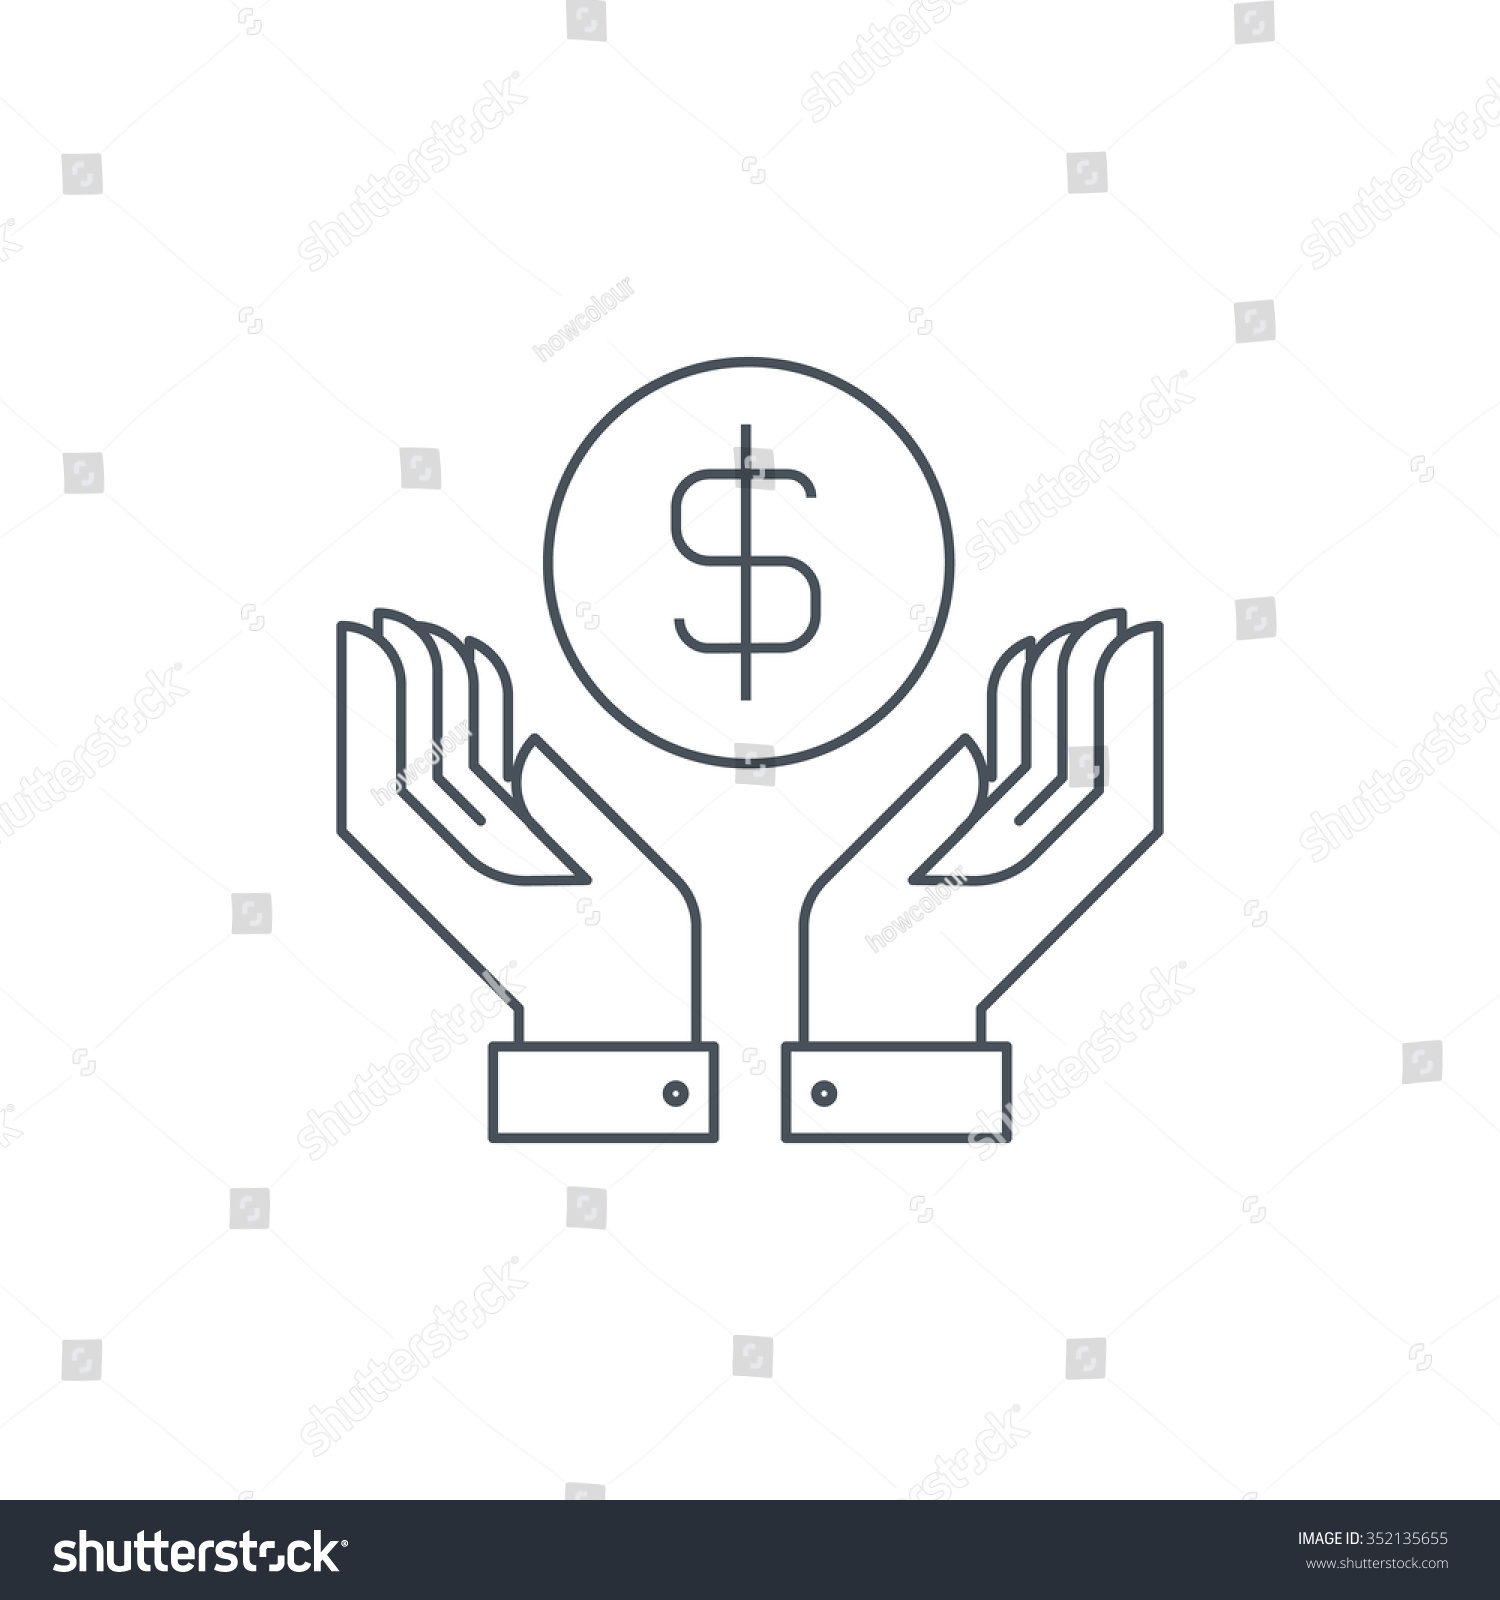 wealth salary icon suitable info graphics stock vector  wealth salary icon suitable for info graphics websites and print media thin line